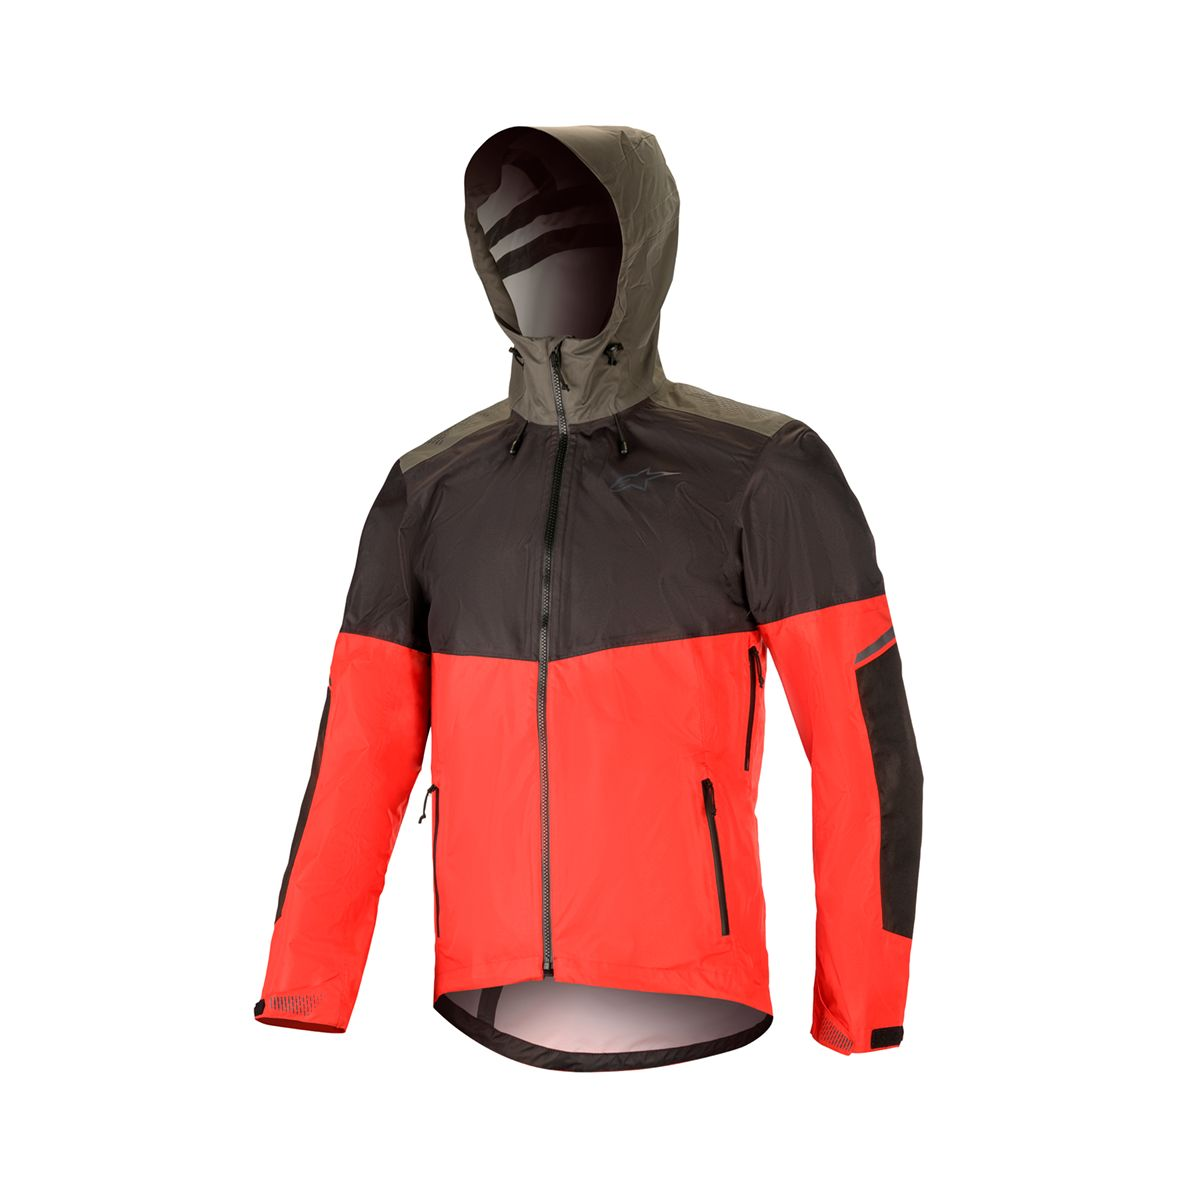 TAHOE WATERPROOF JACKET